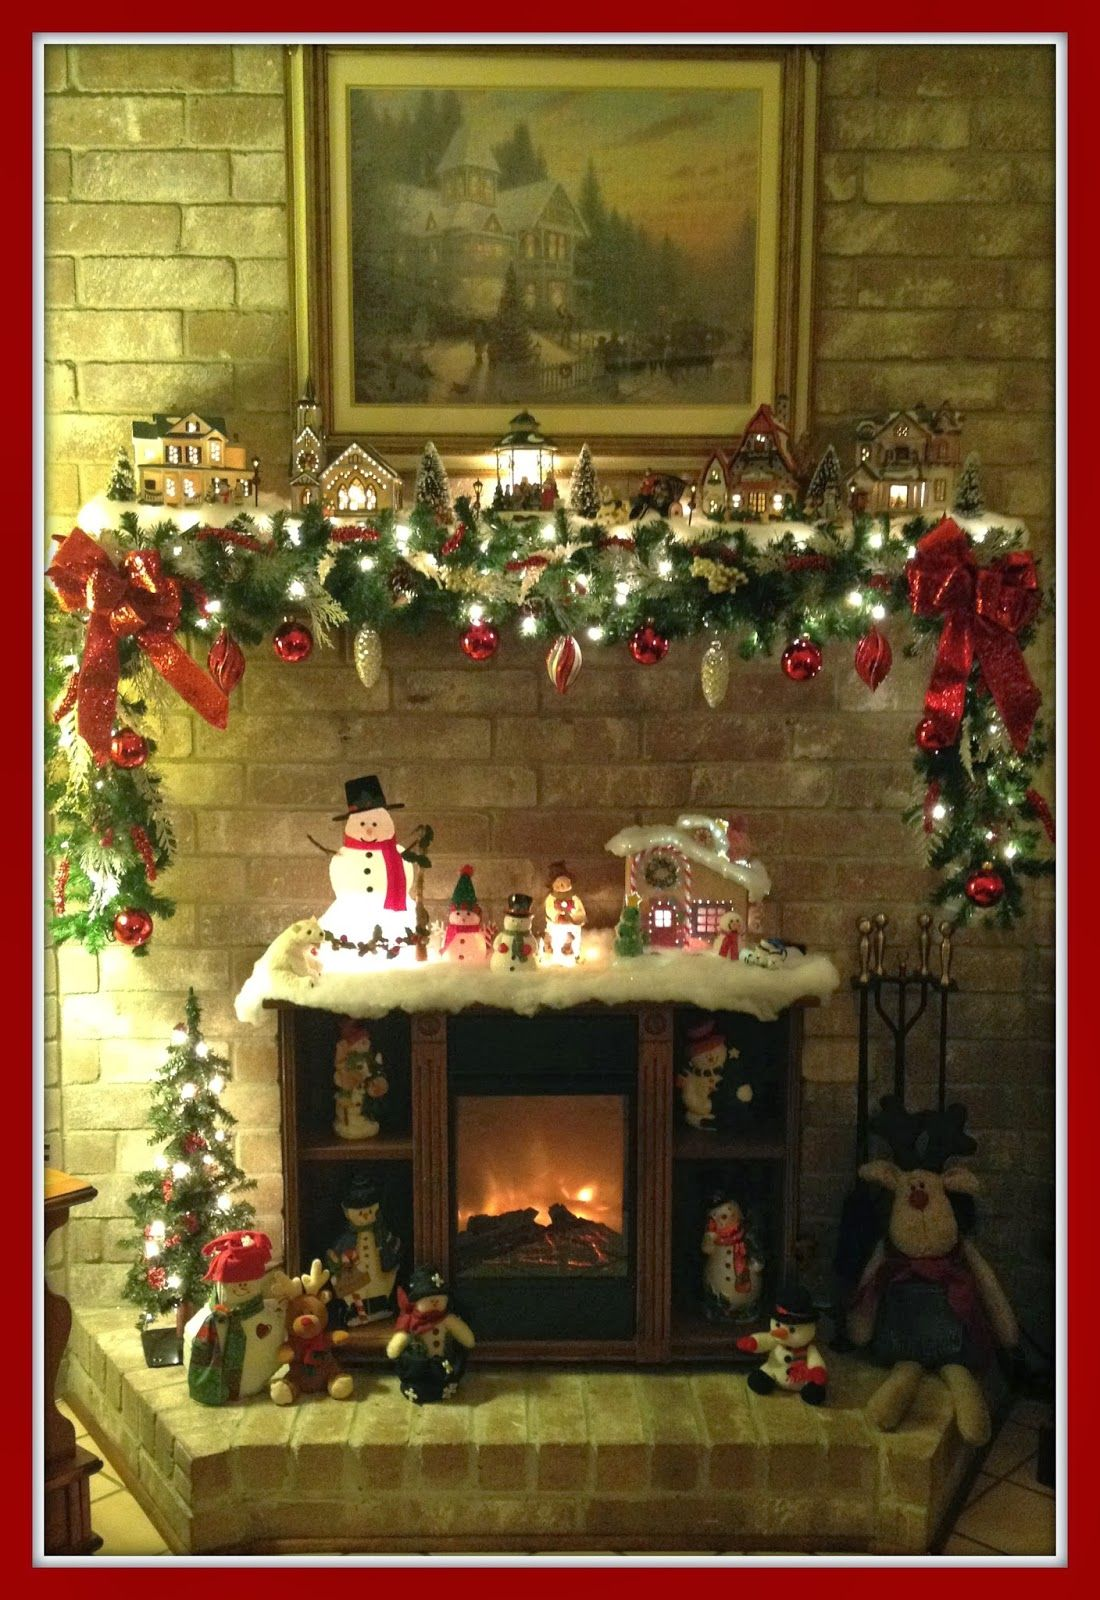 Christmas Decor Ideas For Apartment Living Room: Christmas Mantel, Snow Village, Christmas Village, Garland